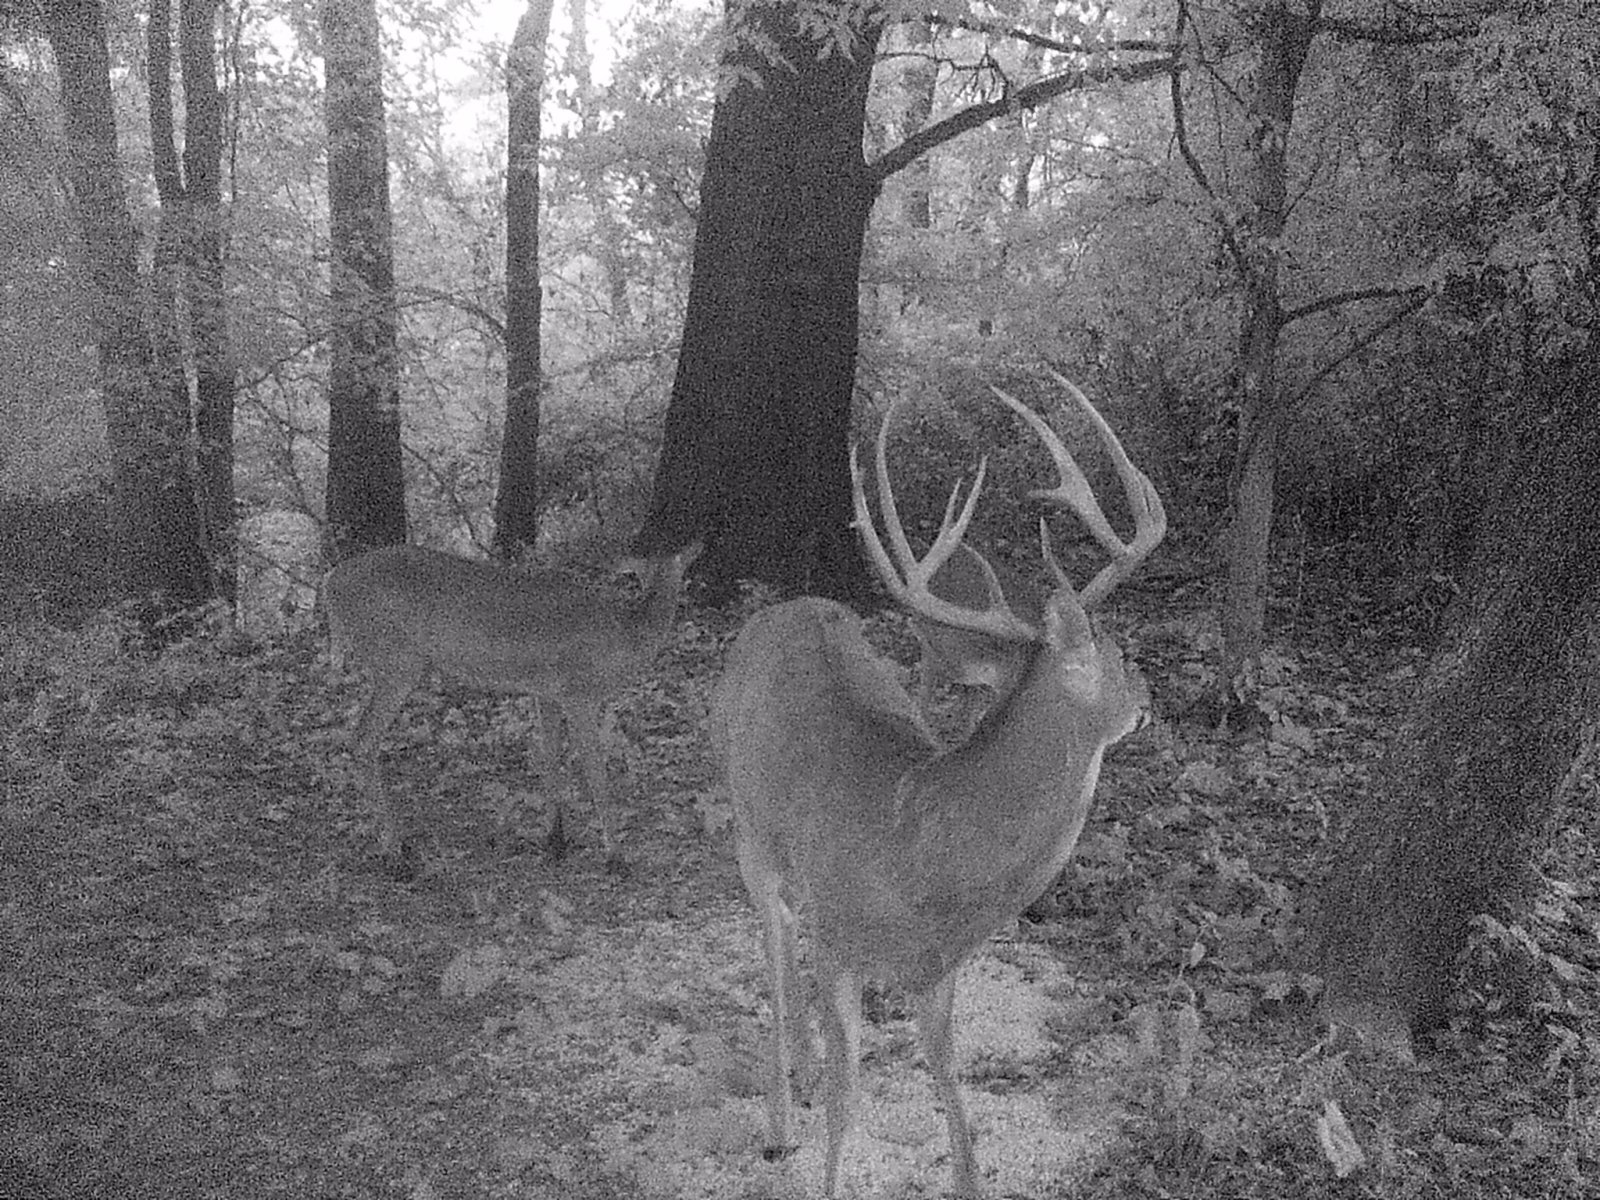 Kentucky Hunting Leases